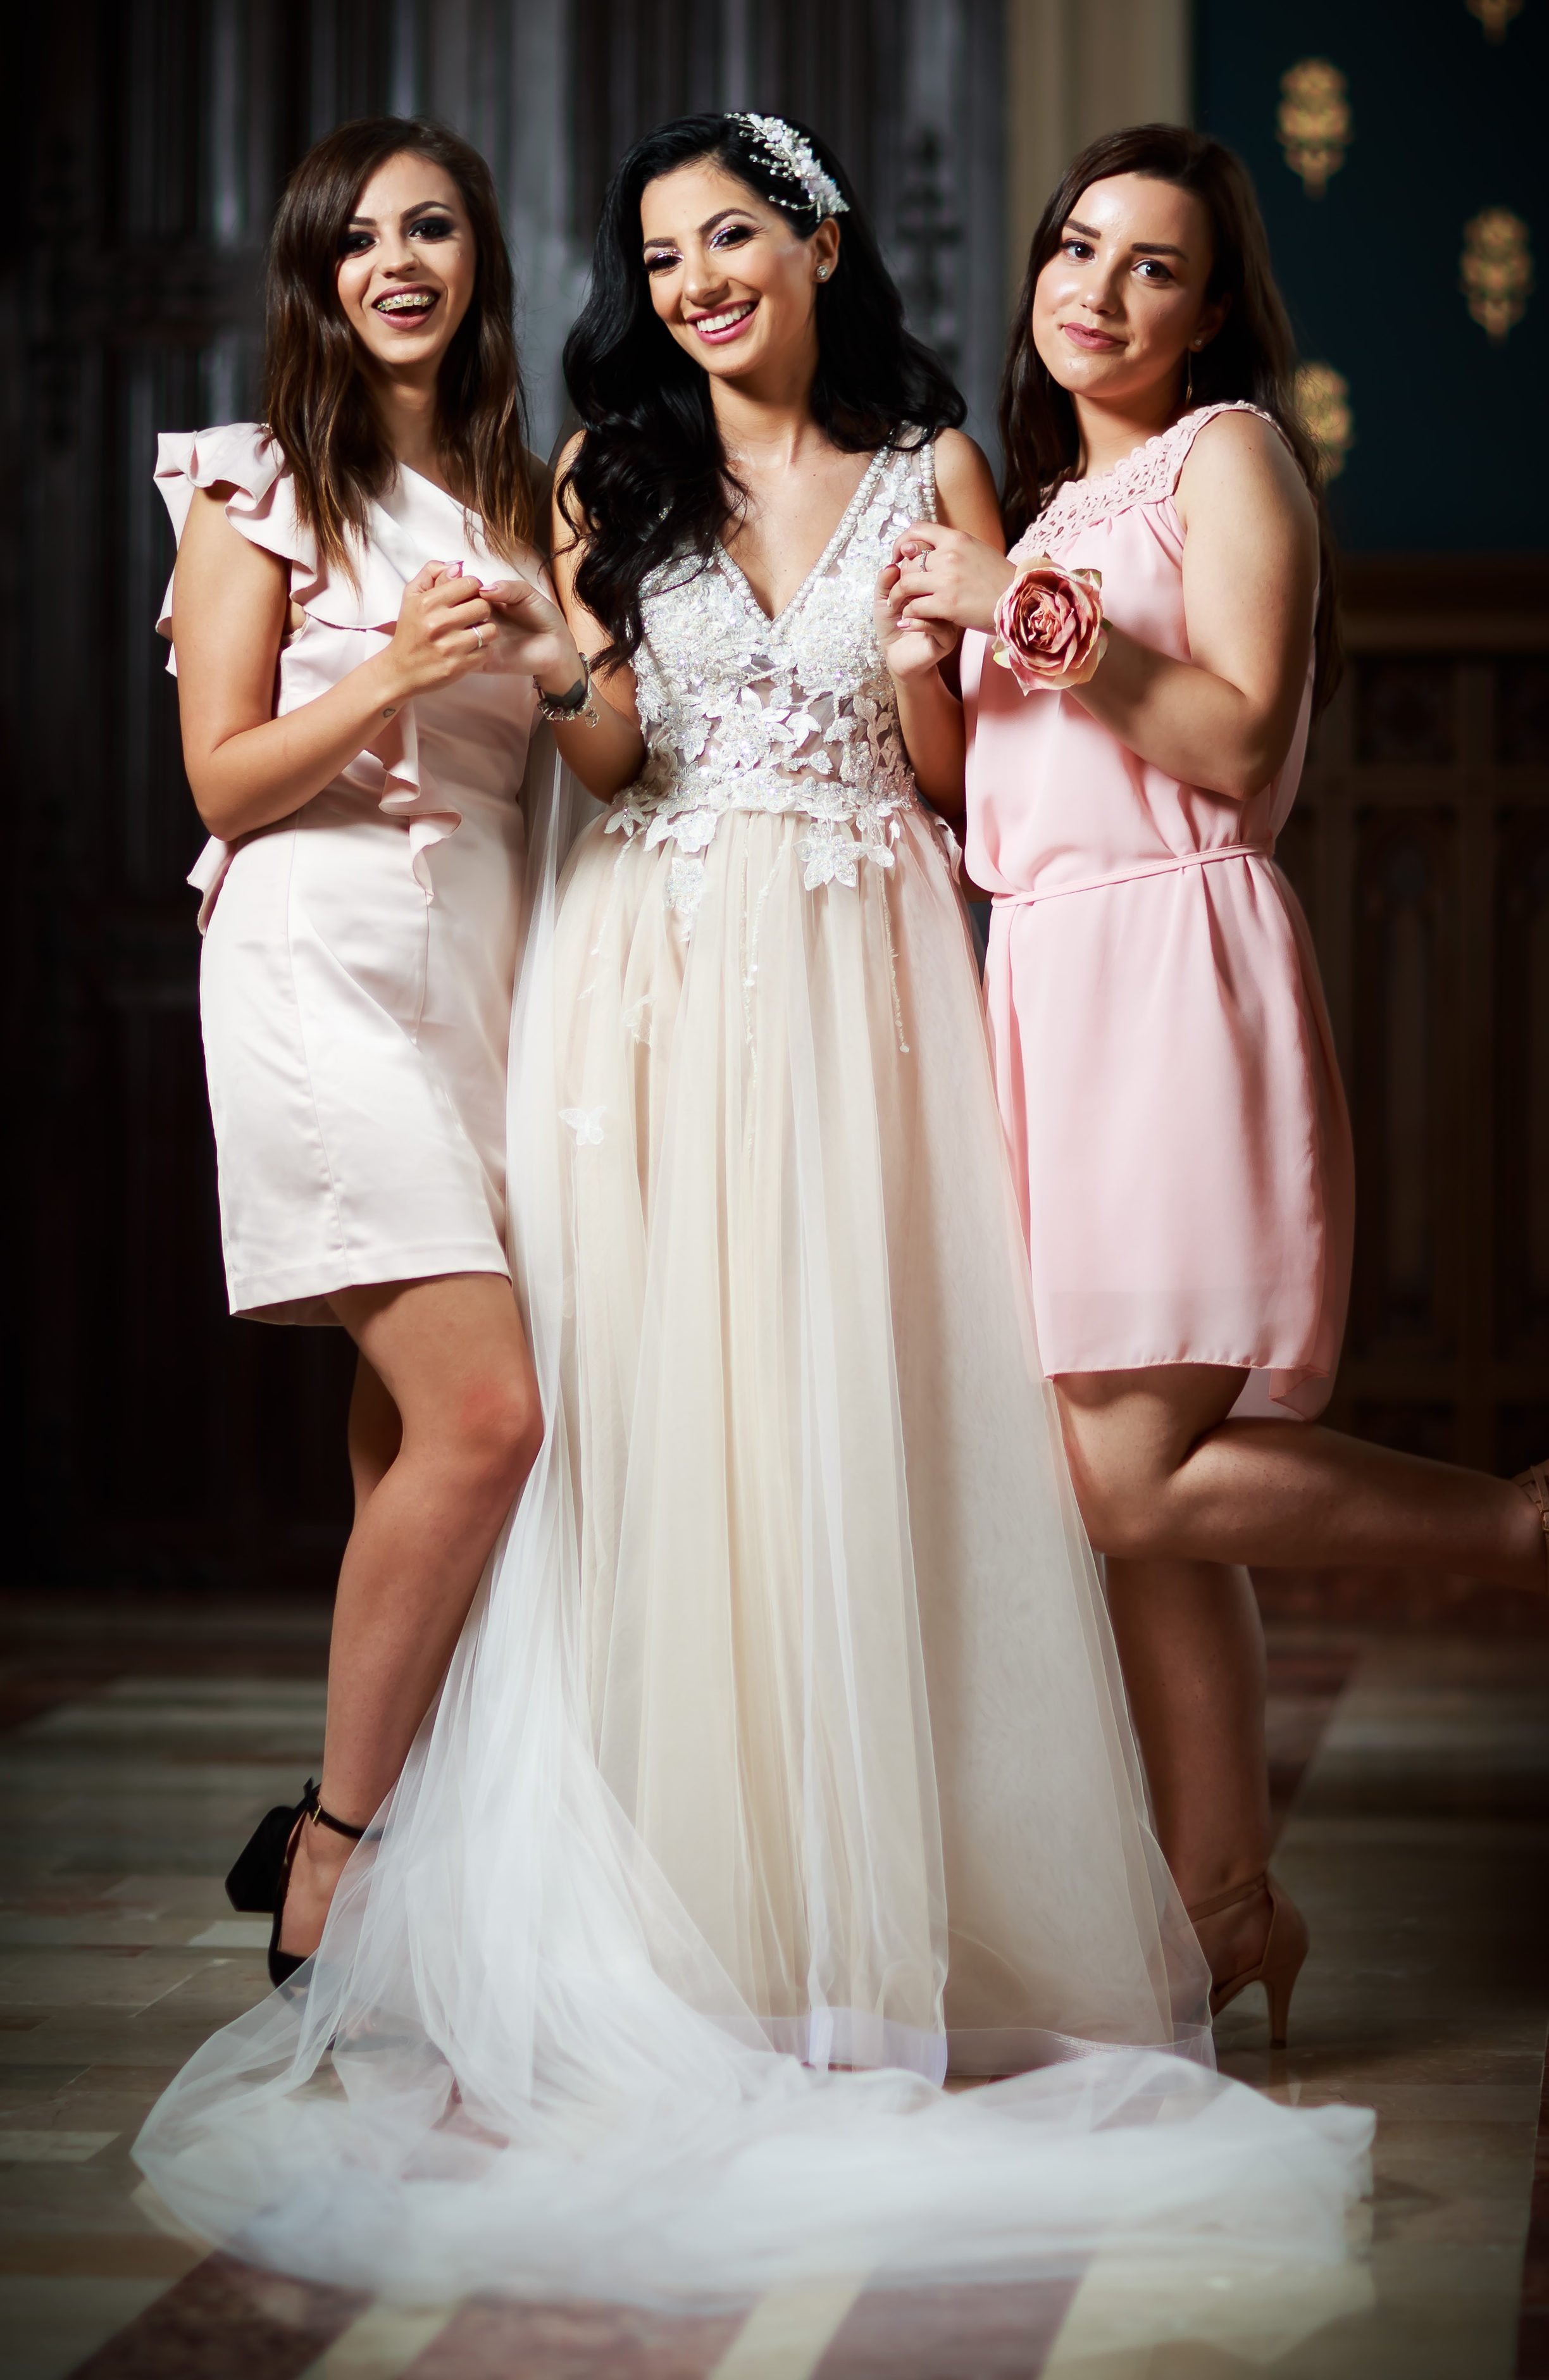 How to glam up your wedding?